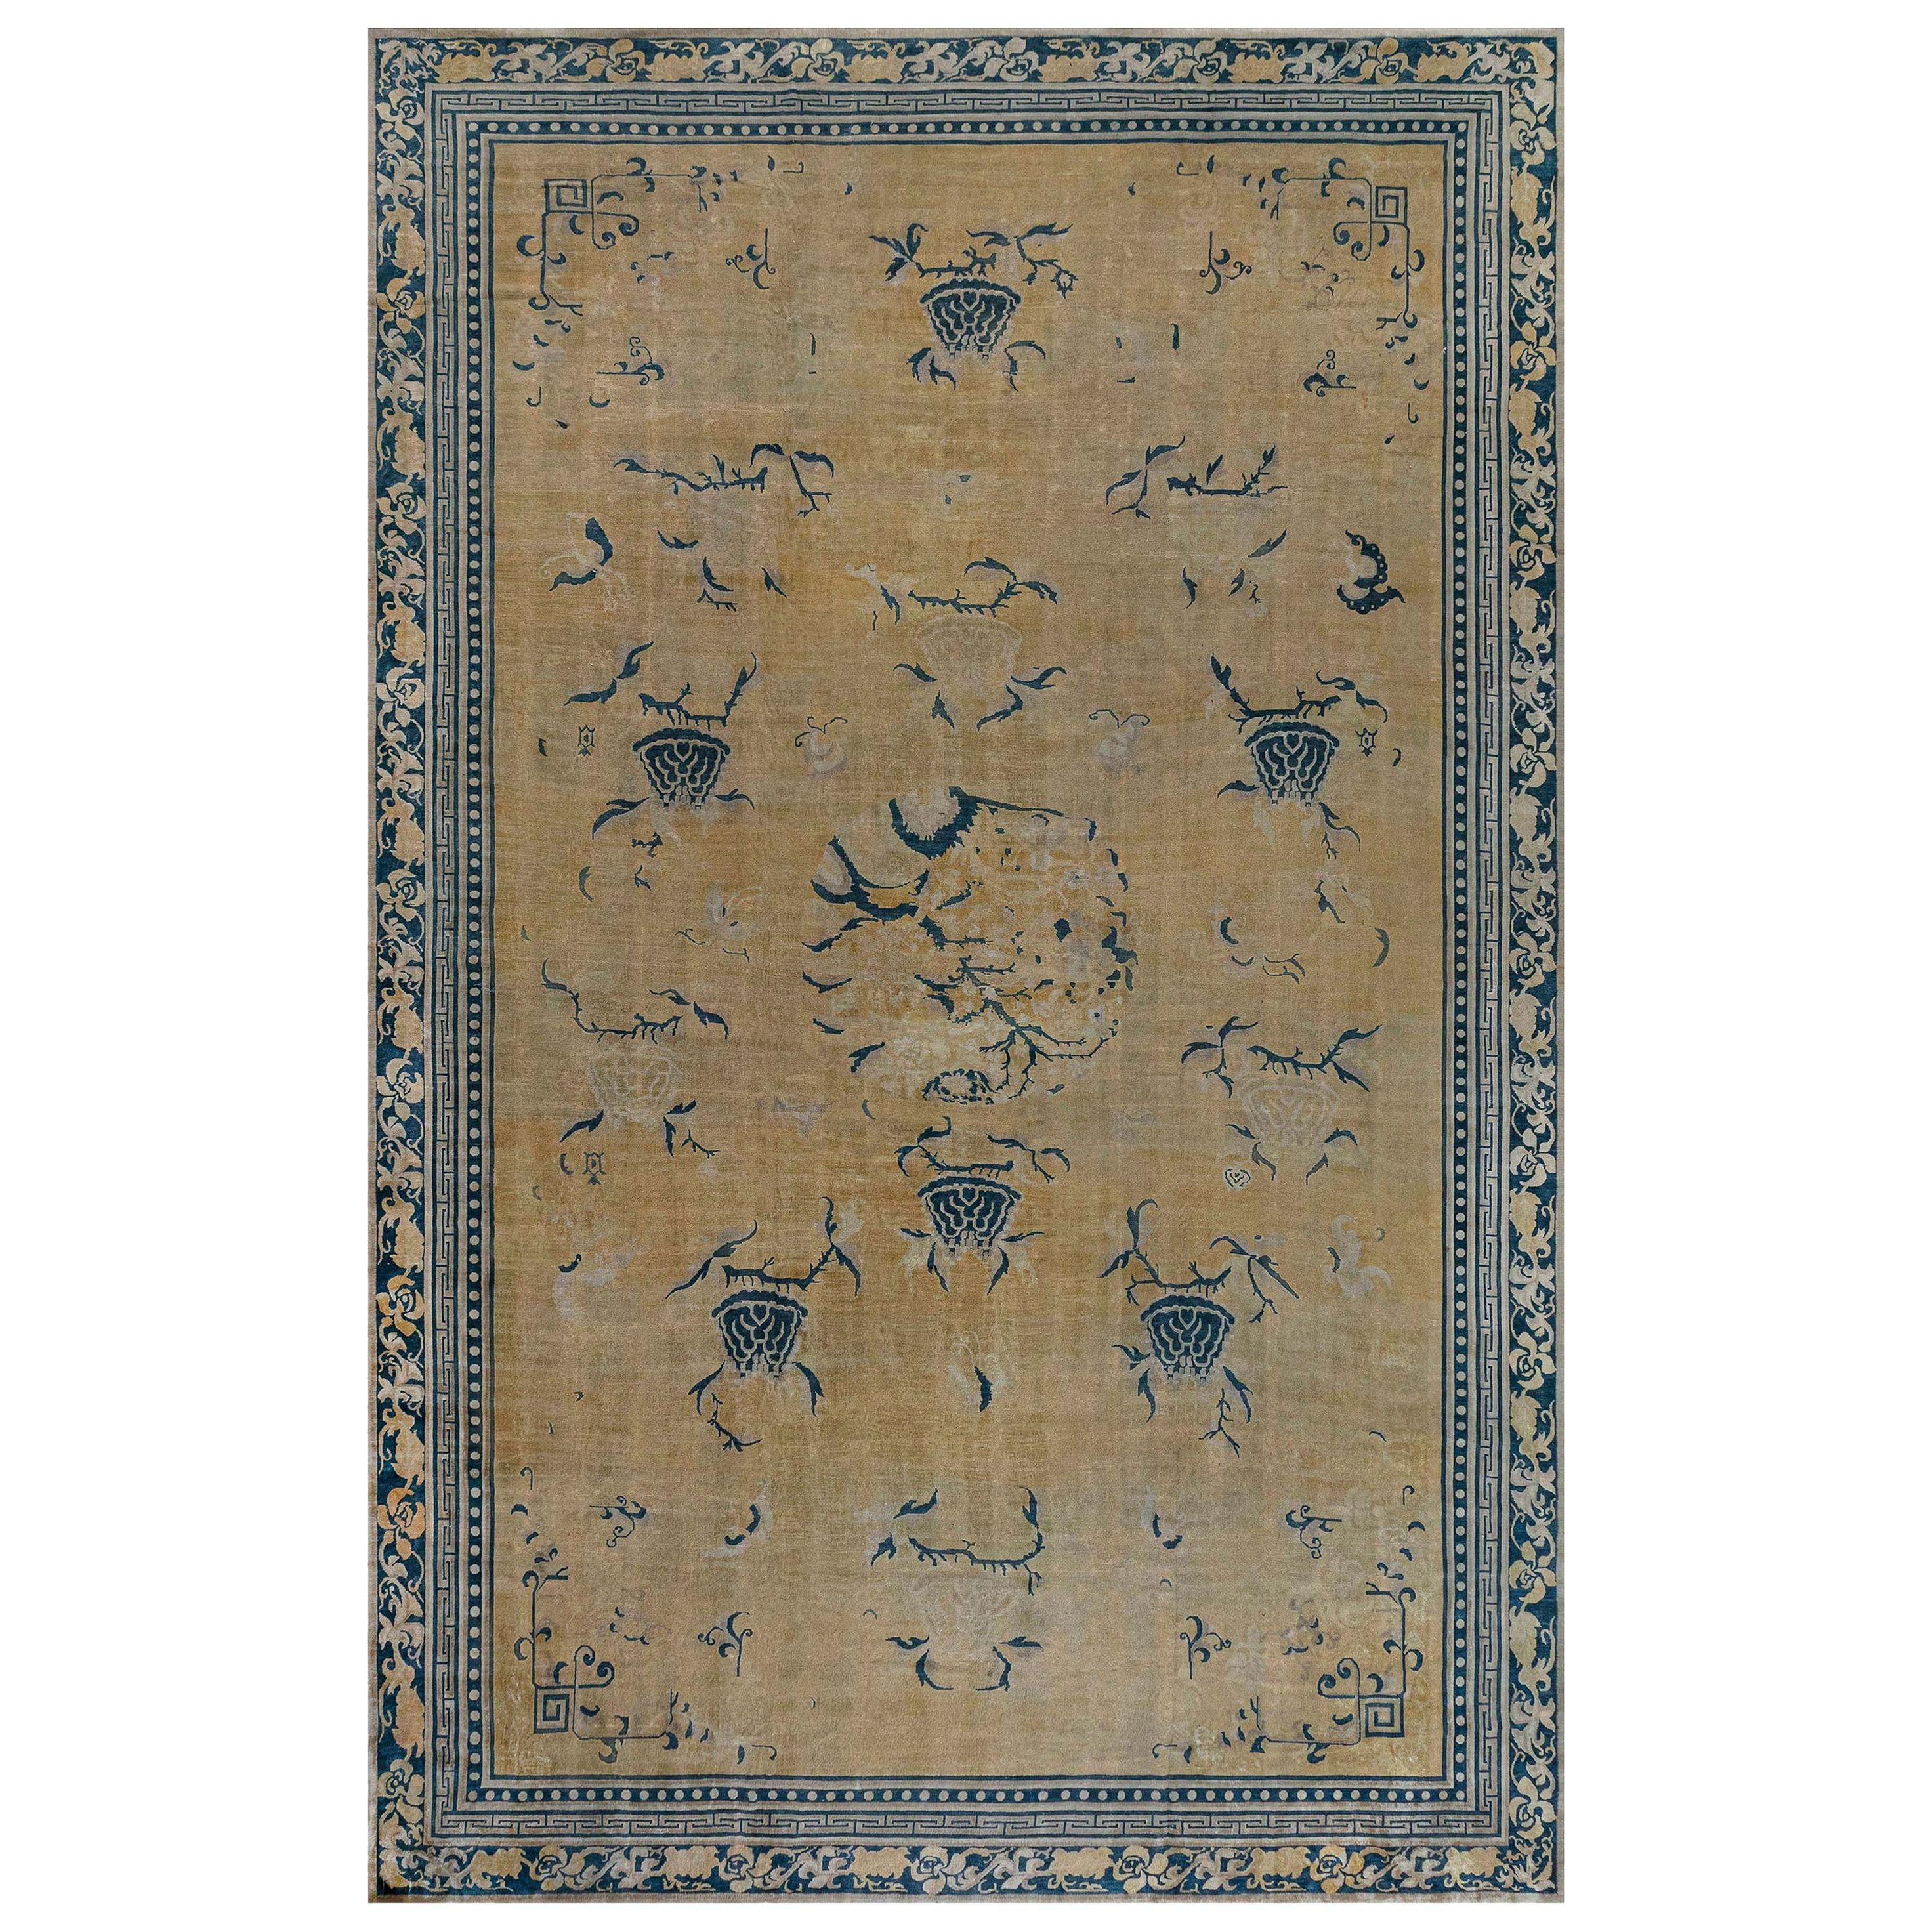 Early 20th Century Chinese Golden Yellow and Navy Blue Handmade Wool Rug